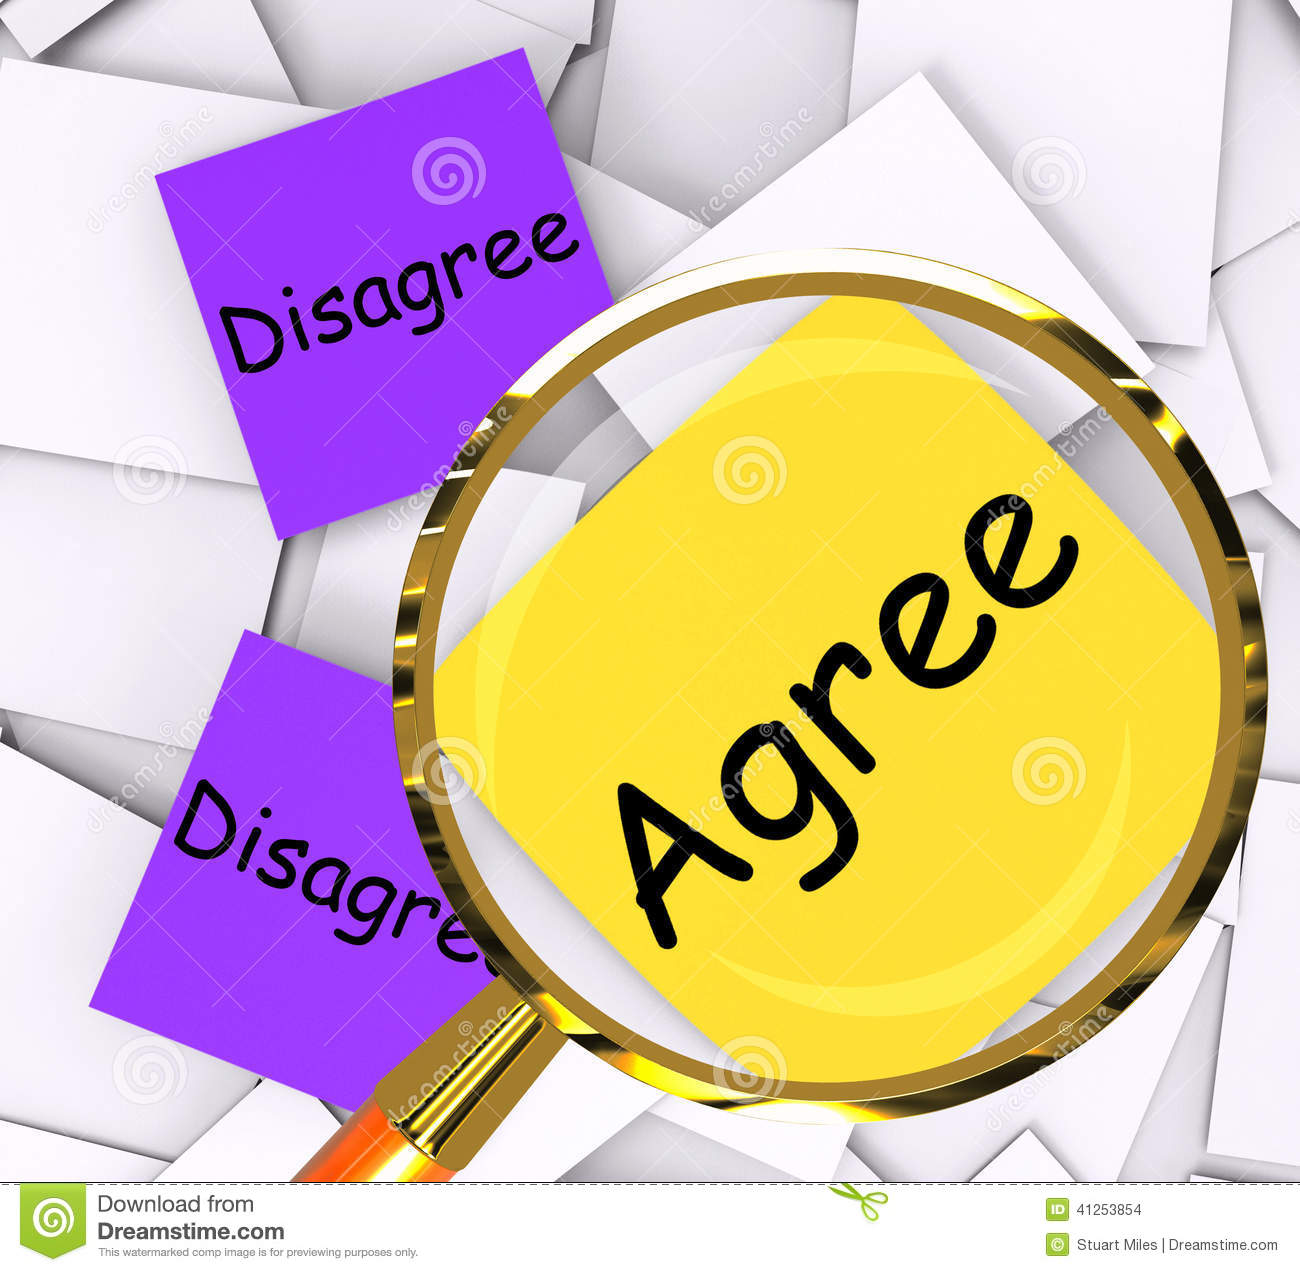 How to Write an Essay Examples Agree Disagree